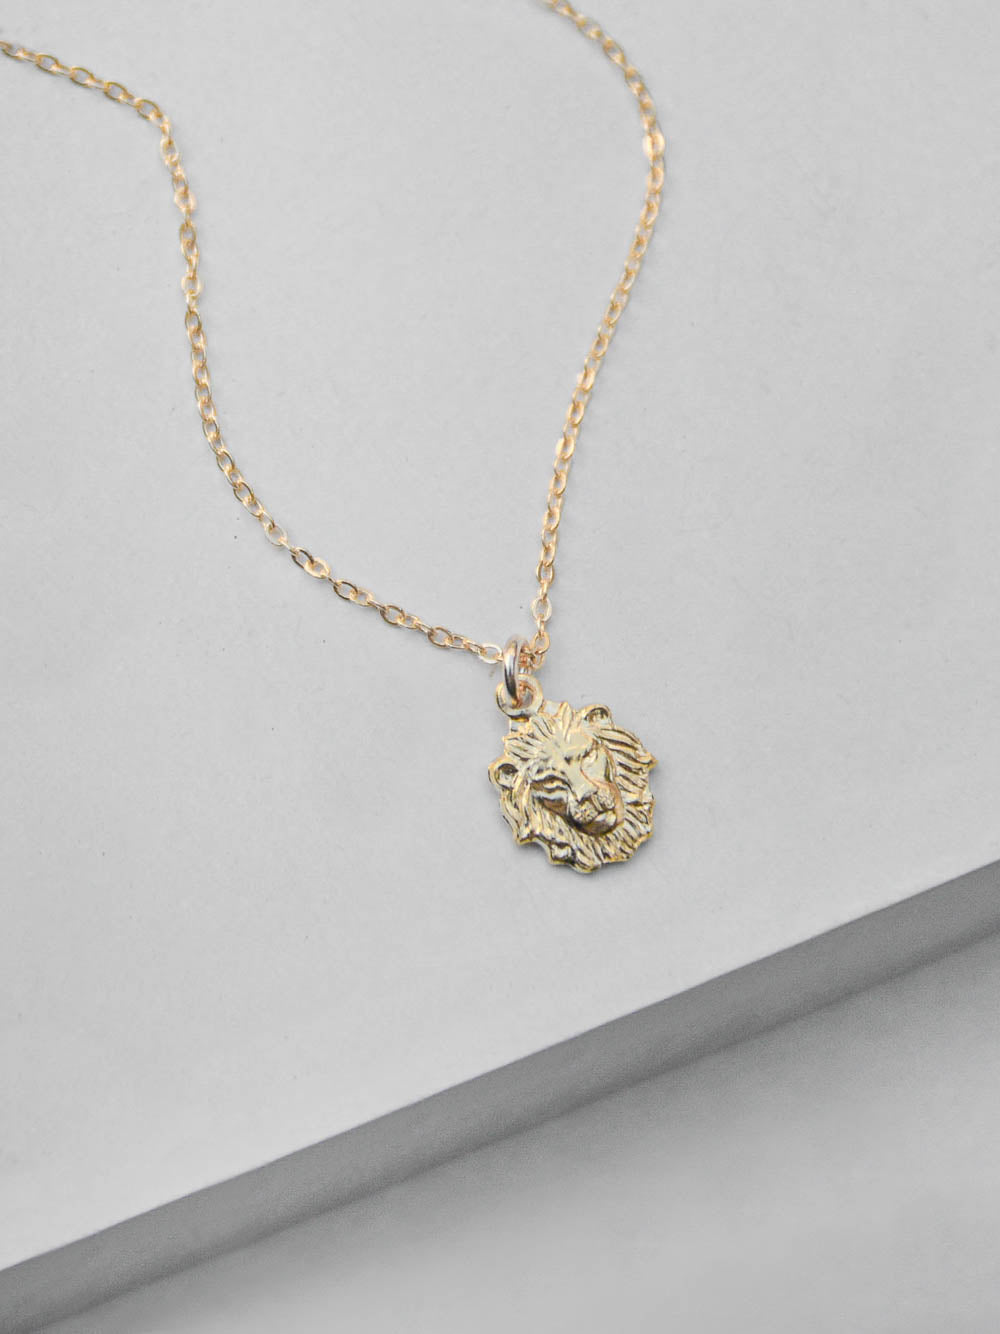 Gold Plated Lion Head Charm  Necklace by The Faint Hearted Jewelry